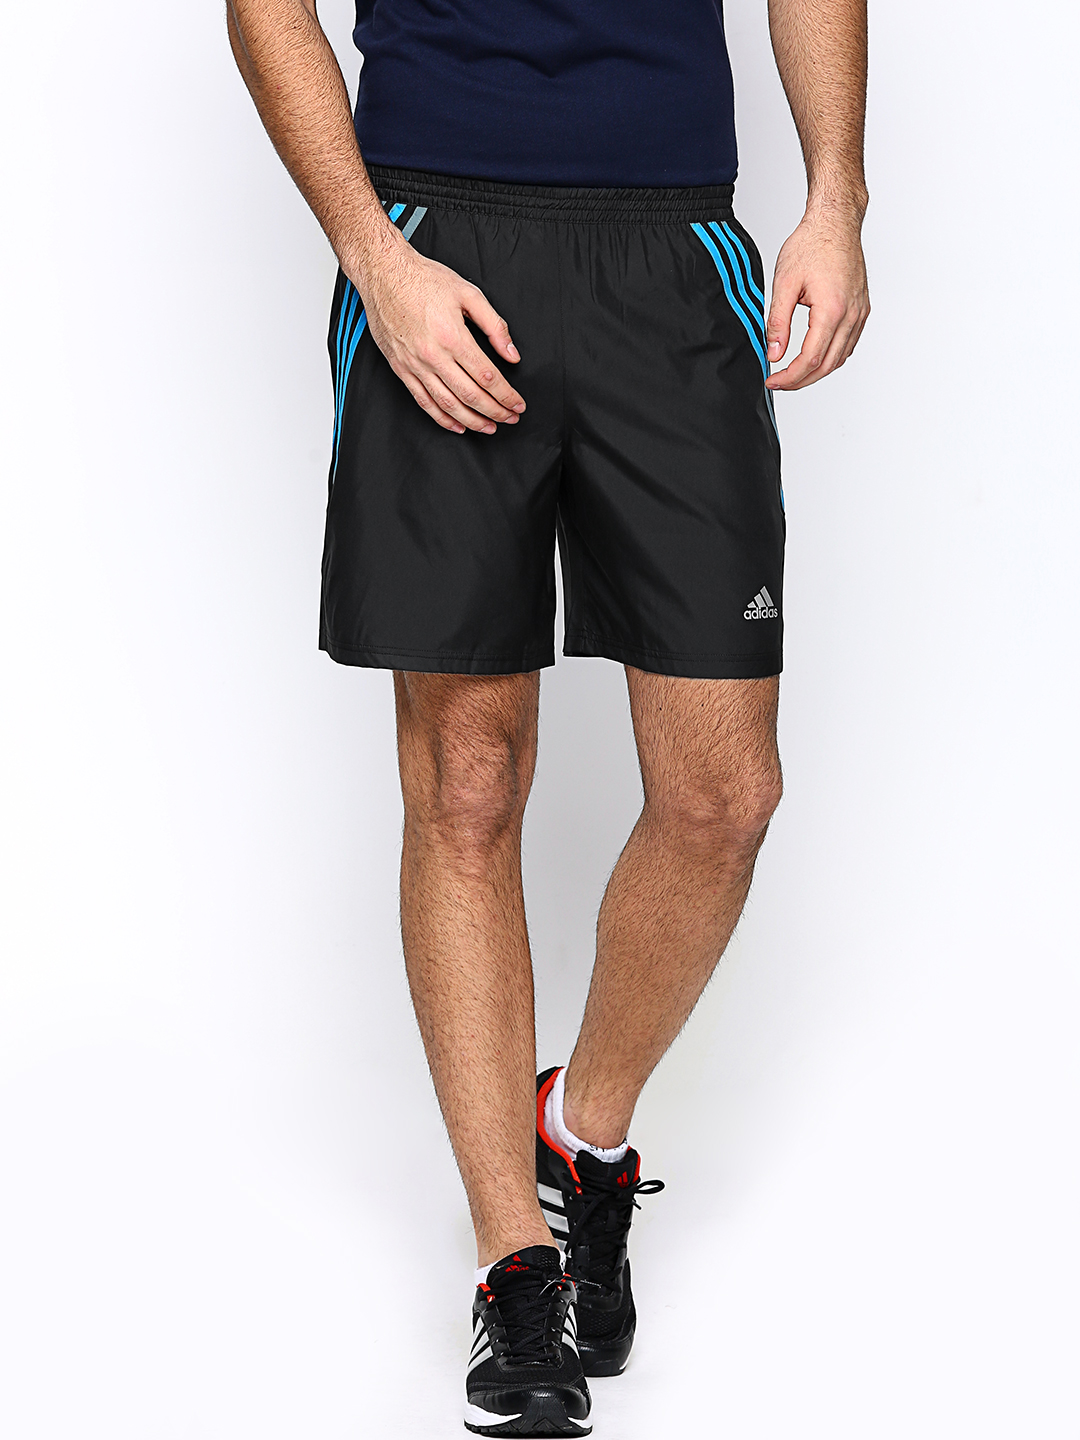 Adidas Adidas Men Black QUE 7 SH M Shorts (Multicolor)